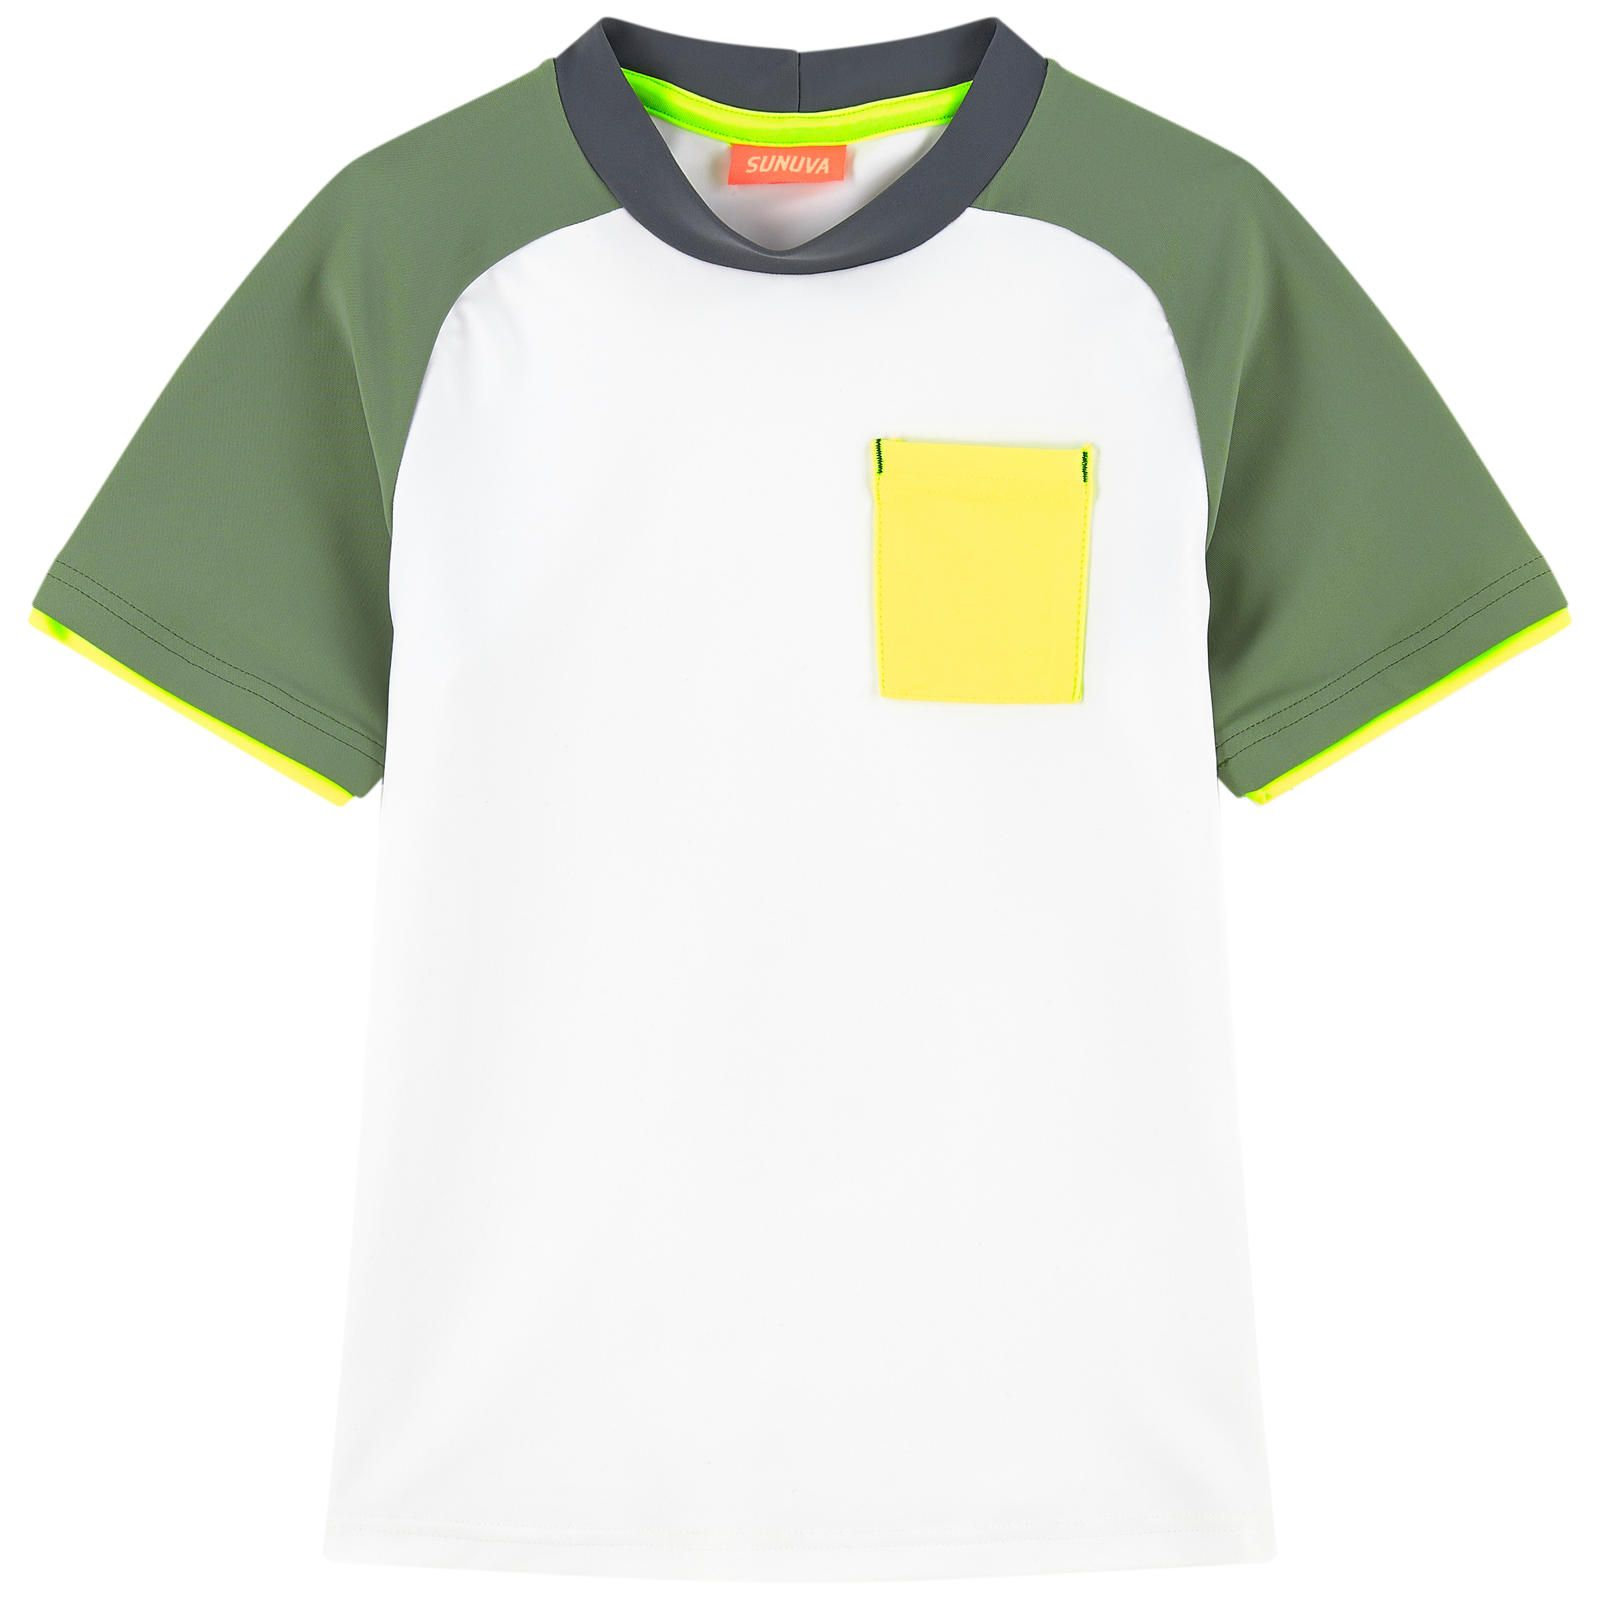 beeb760186 UV protection beach T-shirt in 2019 | SS20 | Beach t shirts, Shirts ...